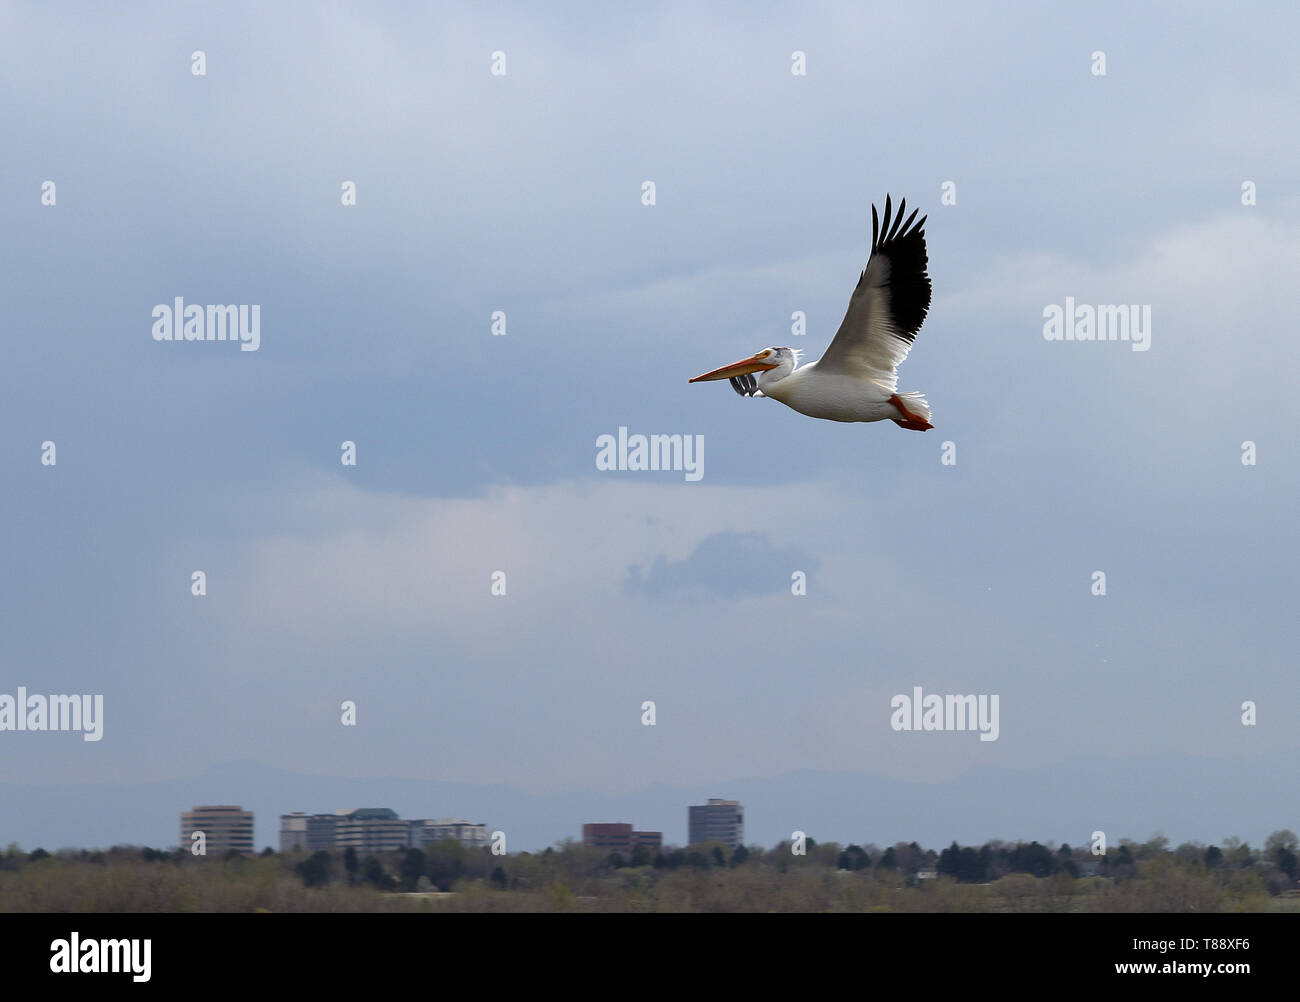 American white pelican flying above Cherry Creek Reservoir